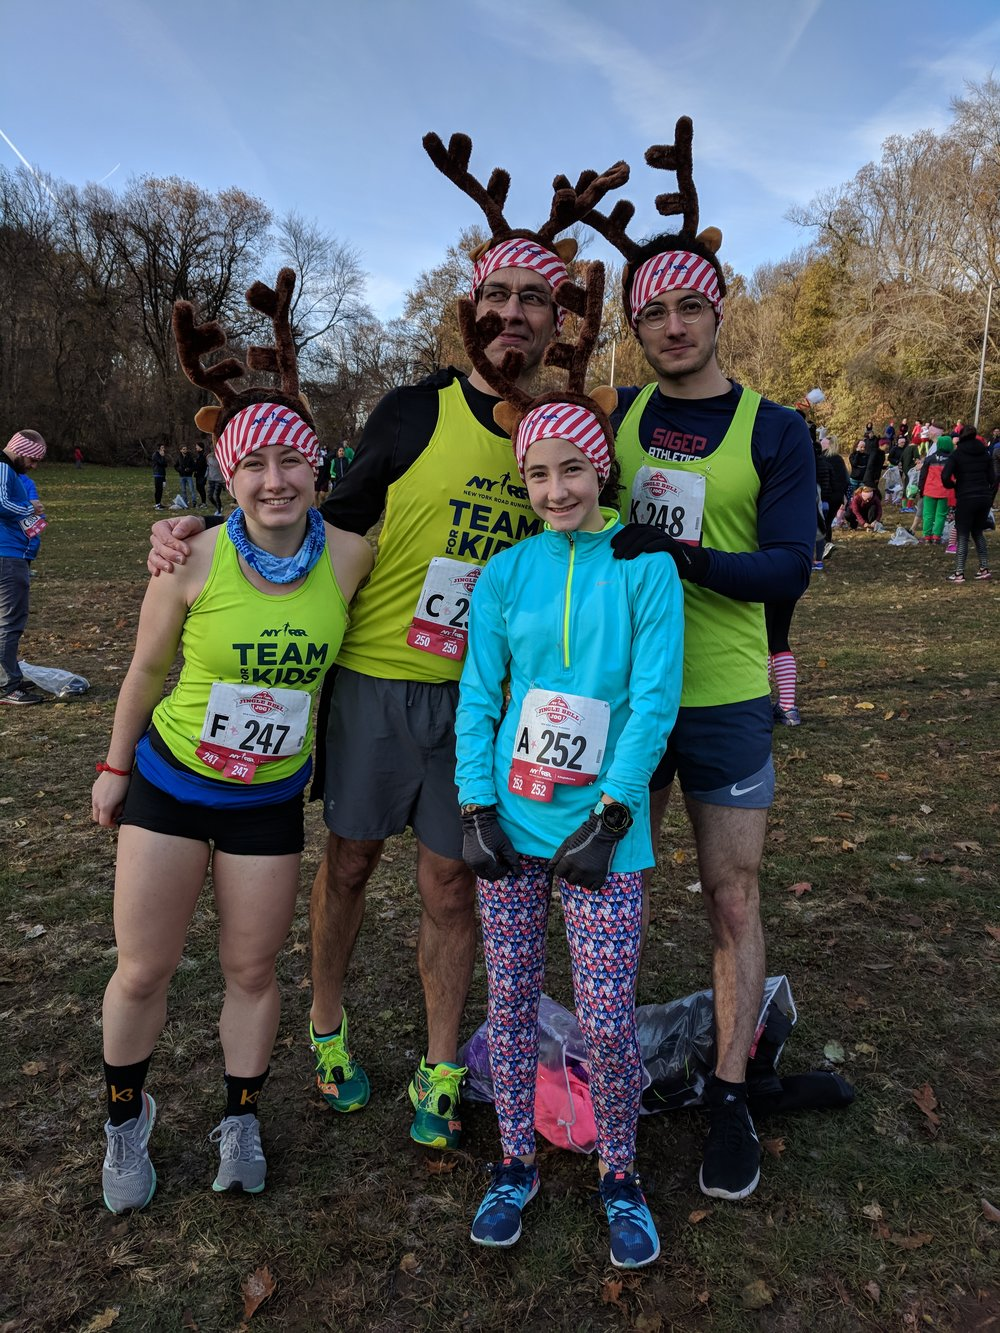 The Wanders made the 2017 NYRR Jingle Bell Jog, a fundraiser for NYRR's youth programs, a family affair.